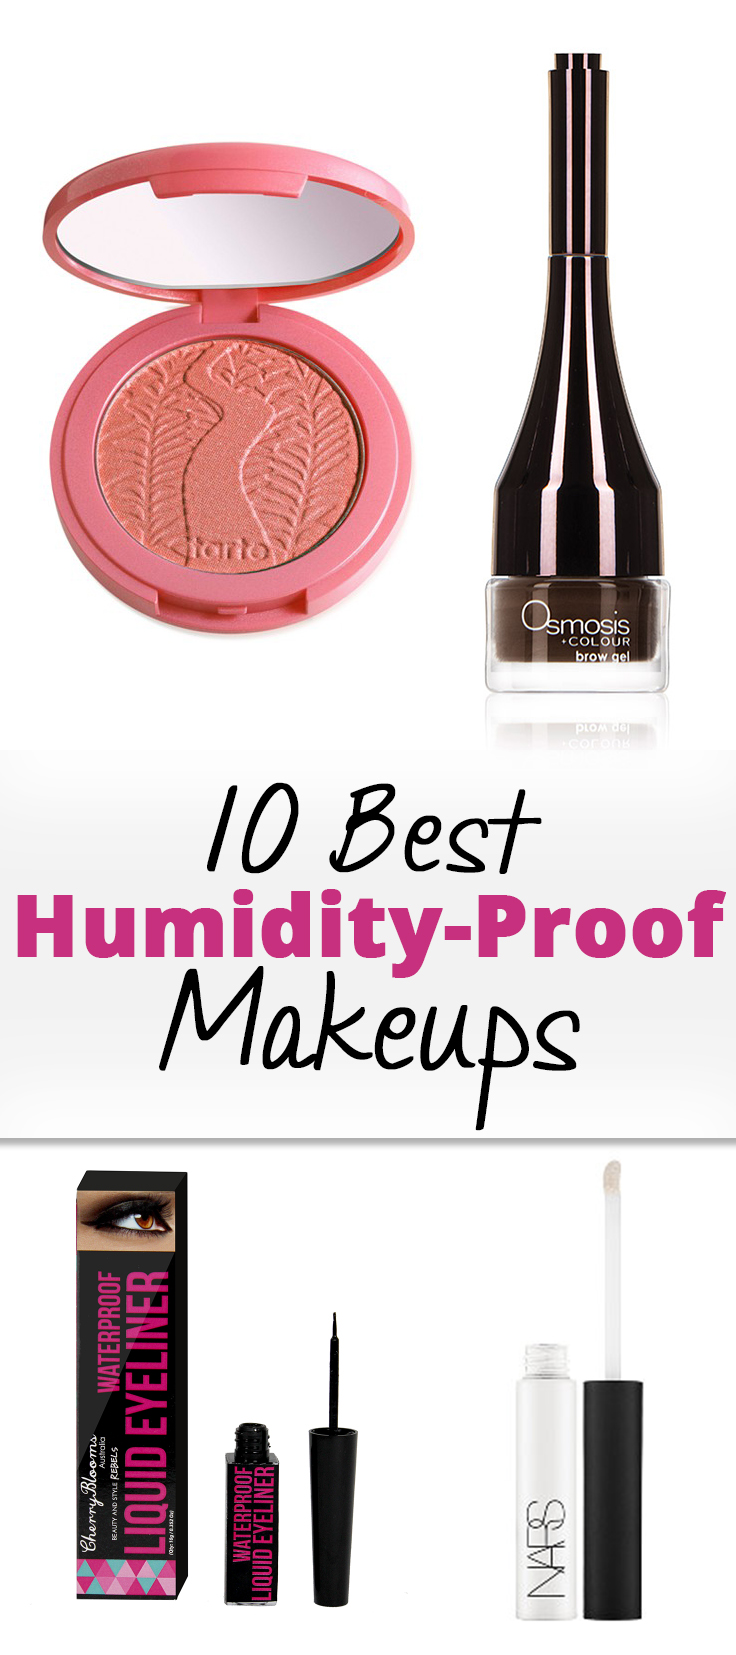 10 Best Humidity-Proof Makeups